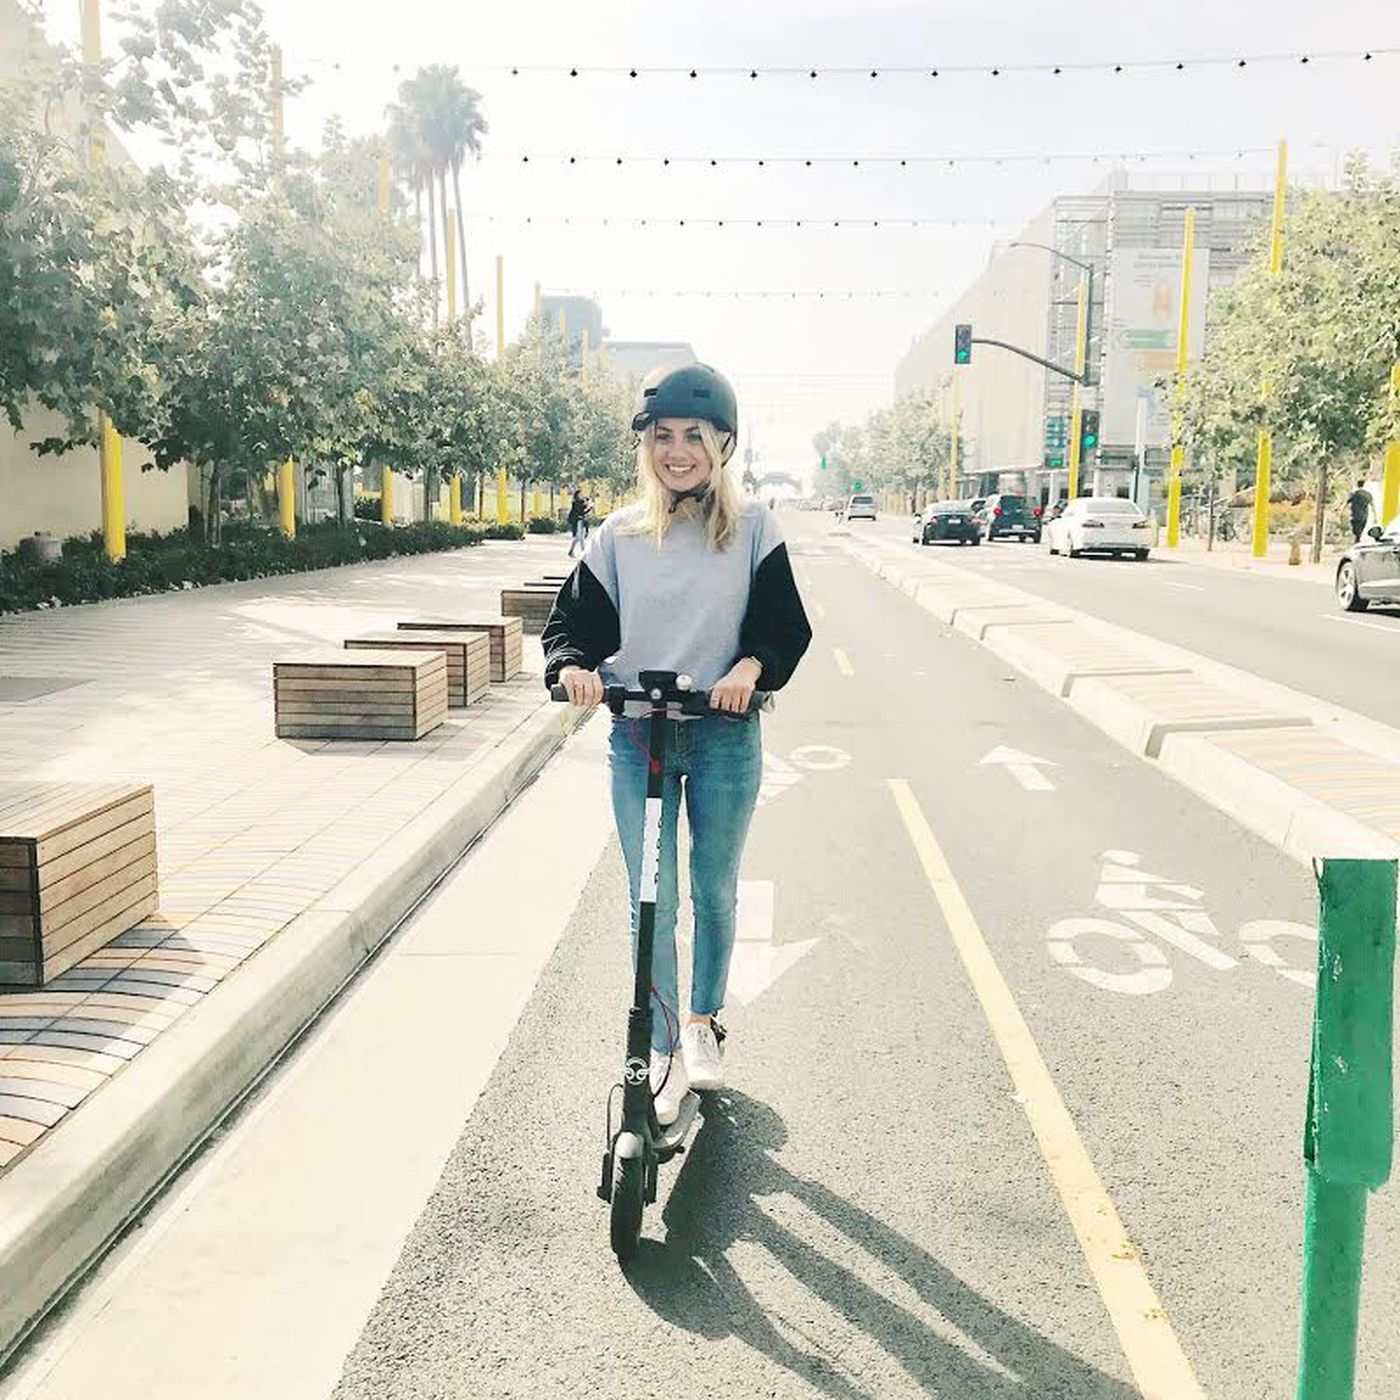 Bird electric scooters are taking over the Westside - Curbed LA